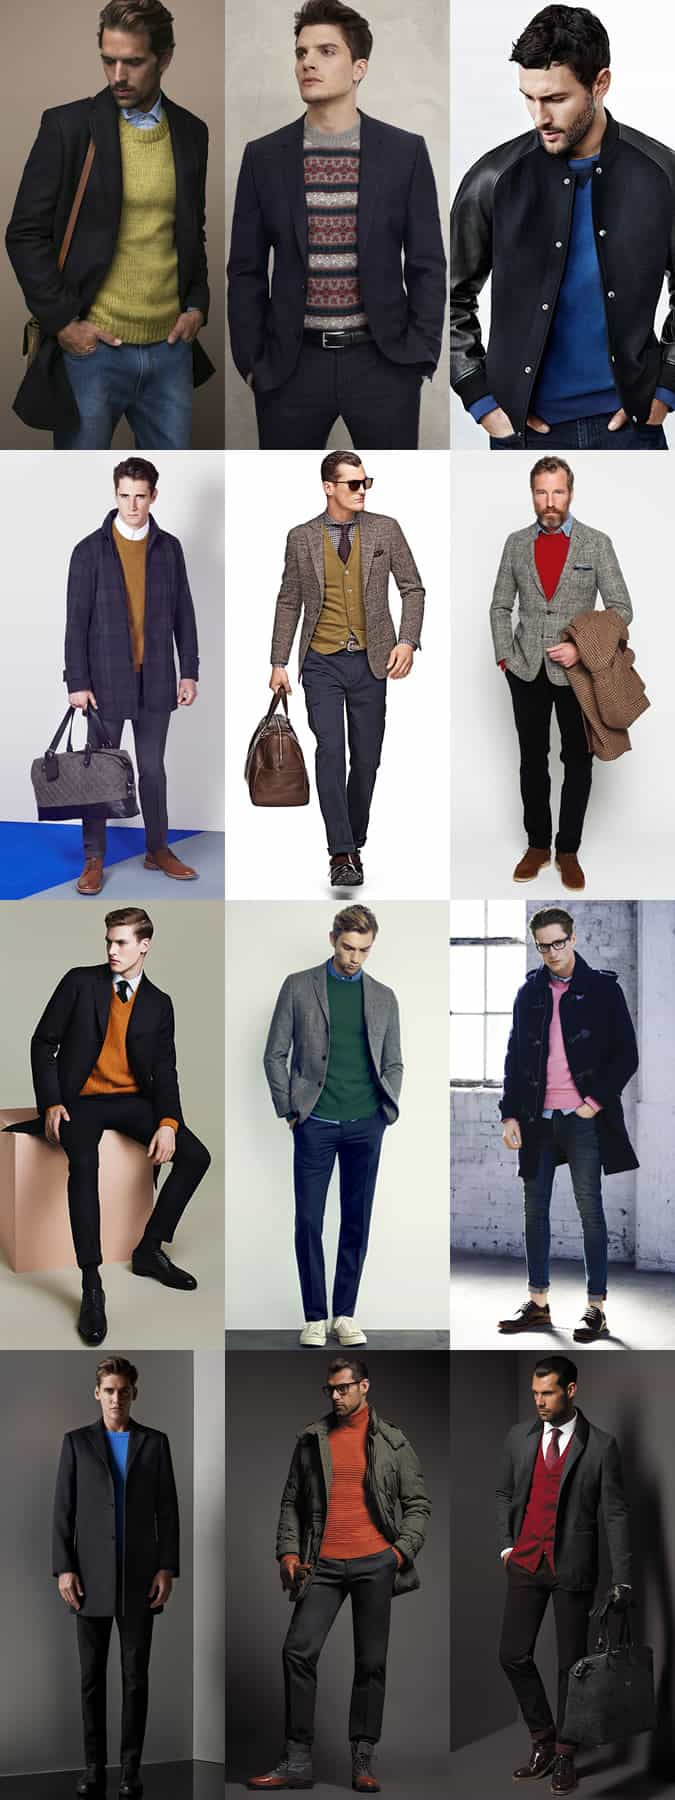 Men's Bold Coloured Knitwear Worn Underneath Neutral Over Layers - Outfit Inspiration Lookbook